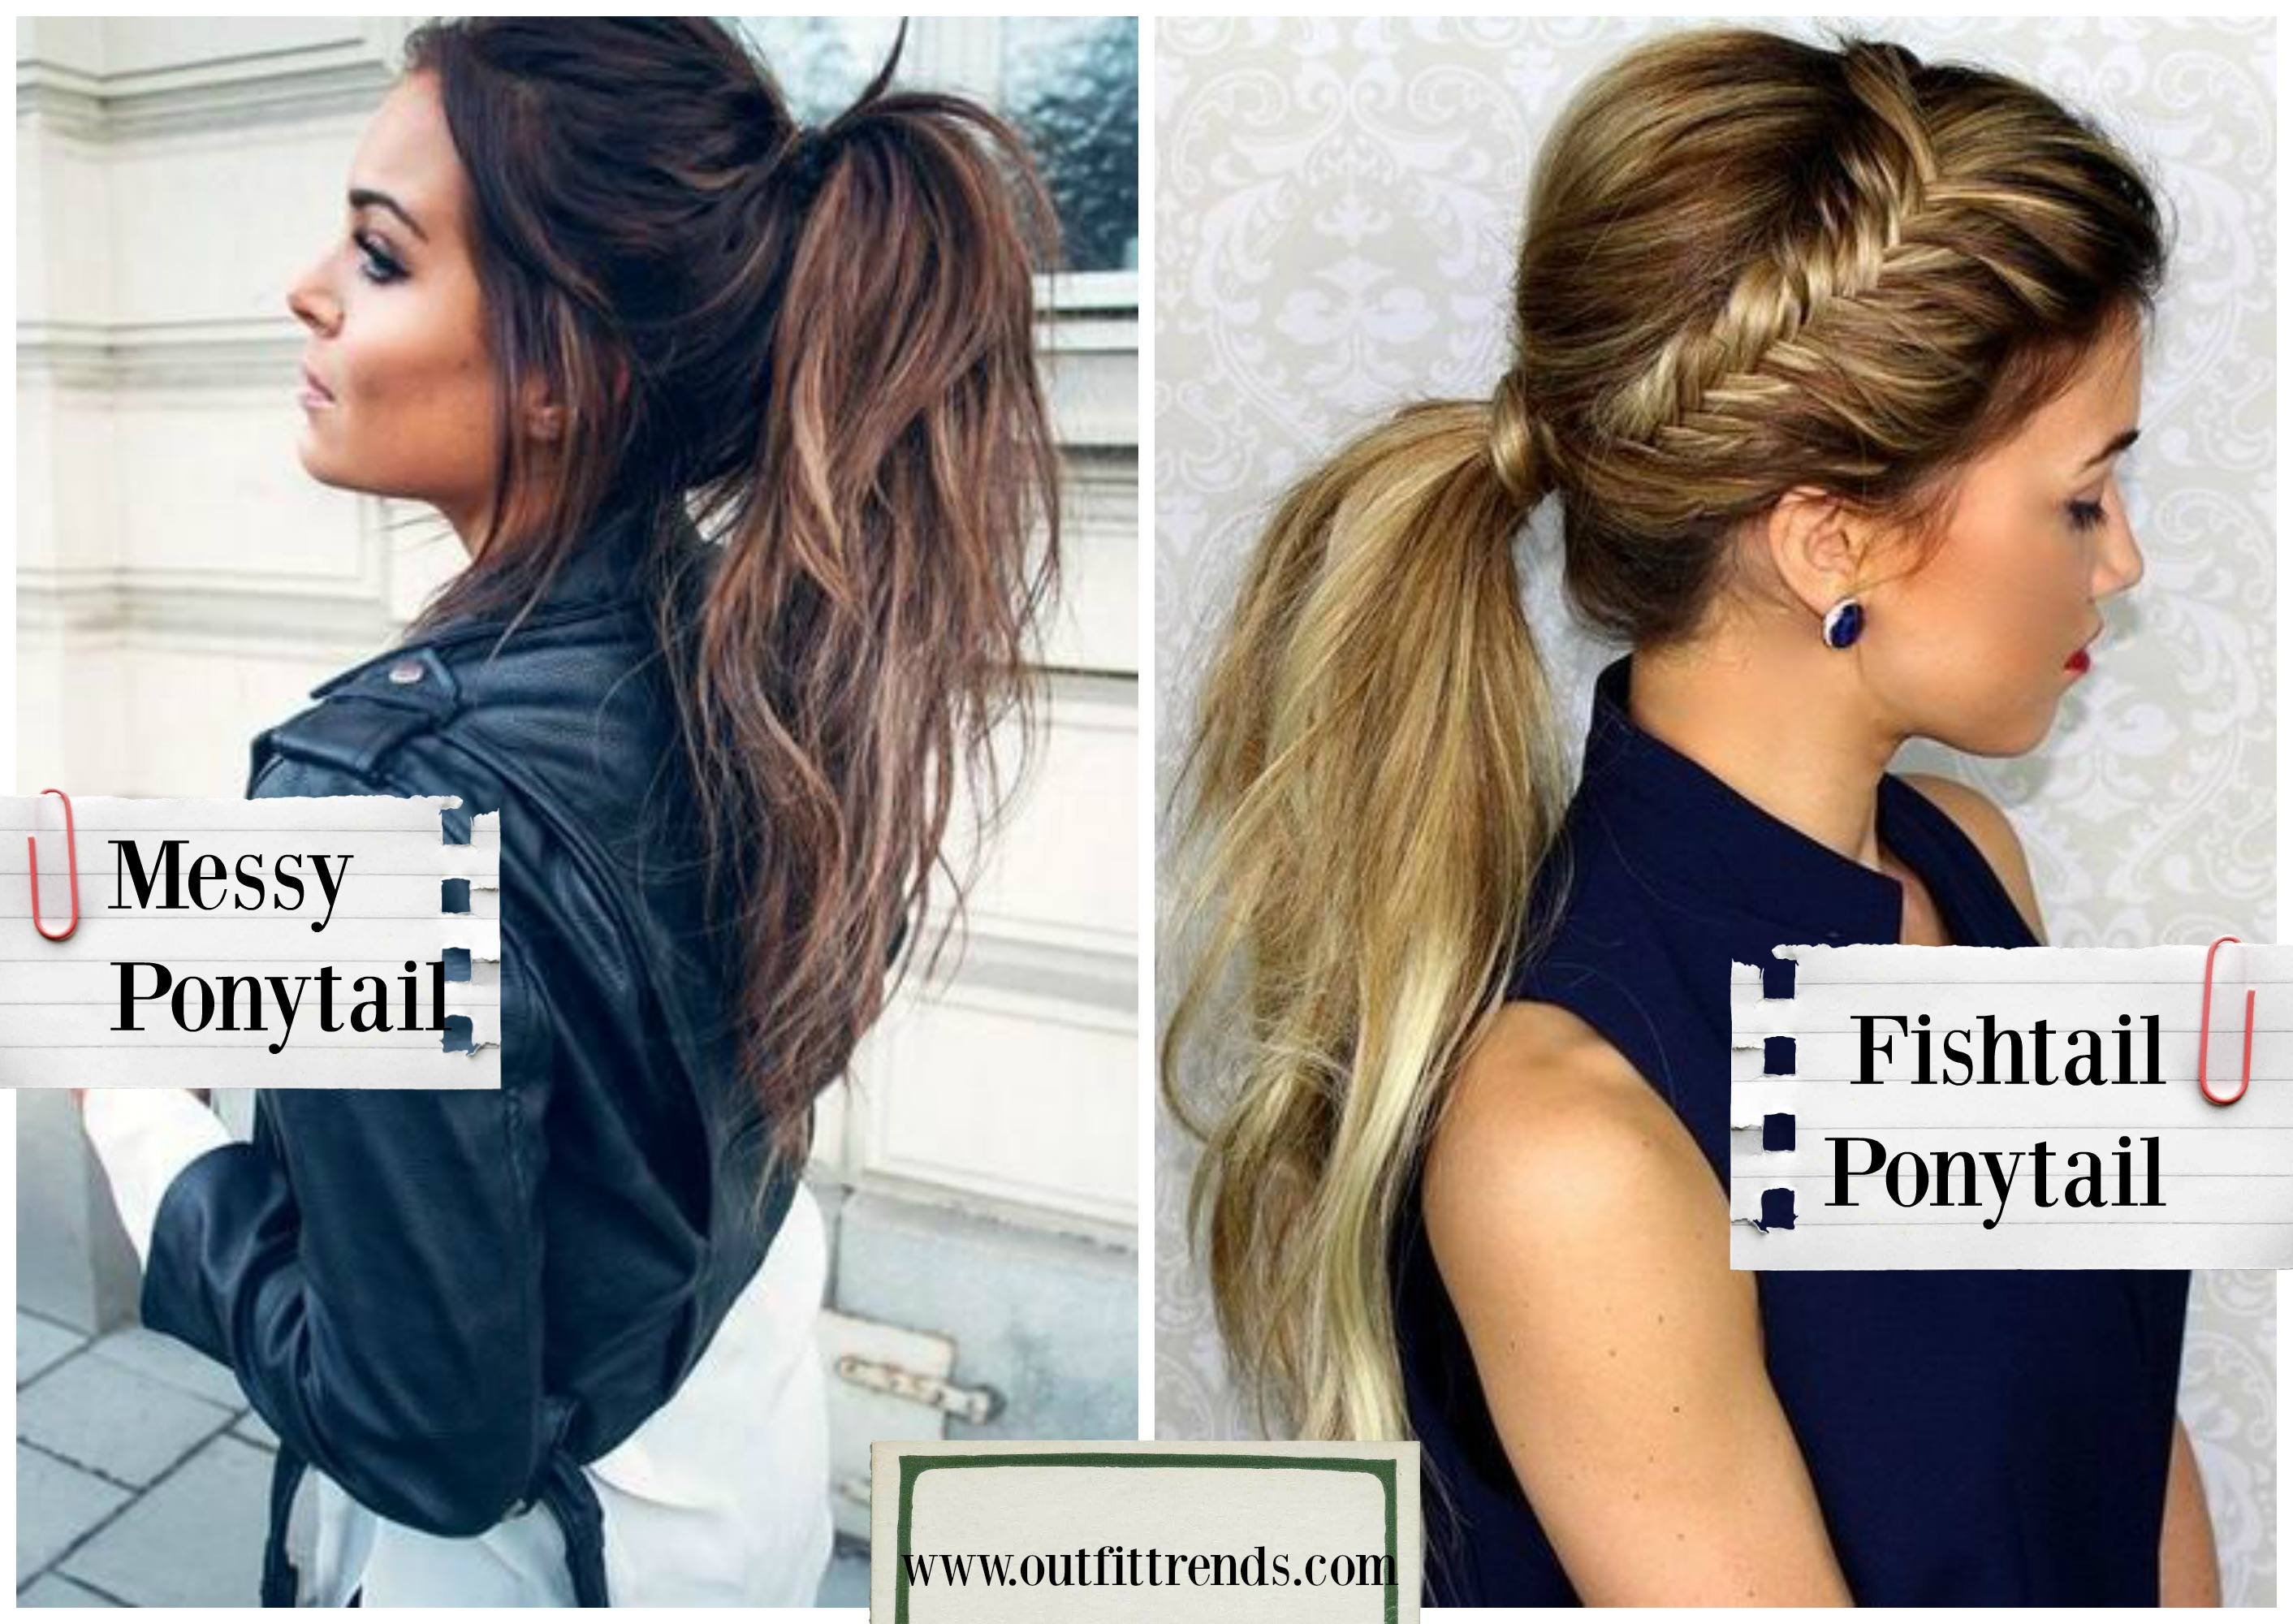 ponytail-hairstyles-for-movie-night-2 Movie Night Outfits- 20 Ways To Dress For The Movies For Girls